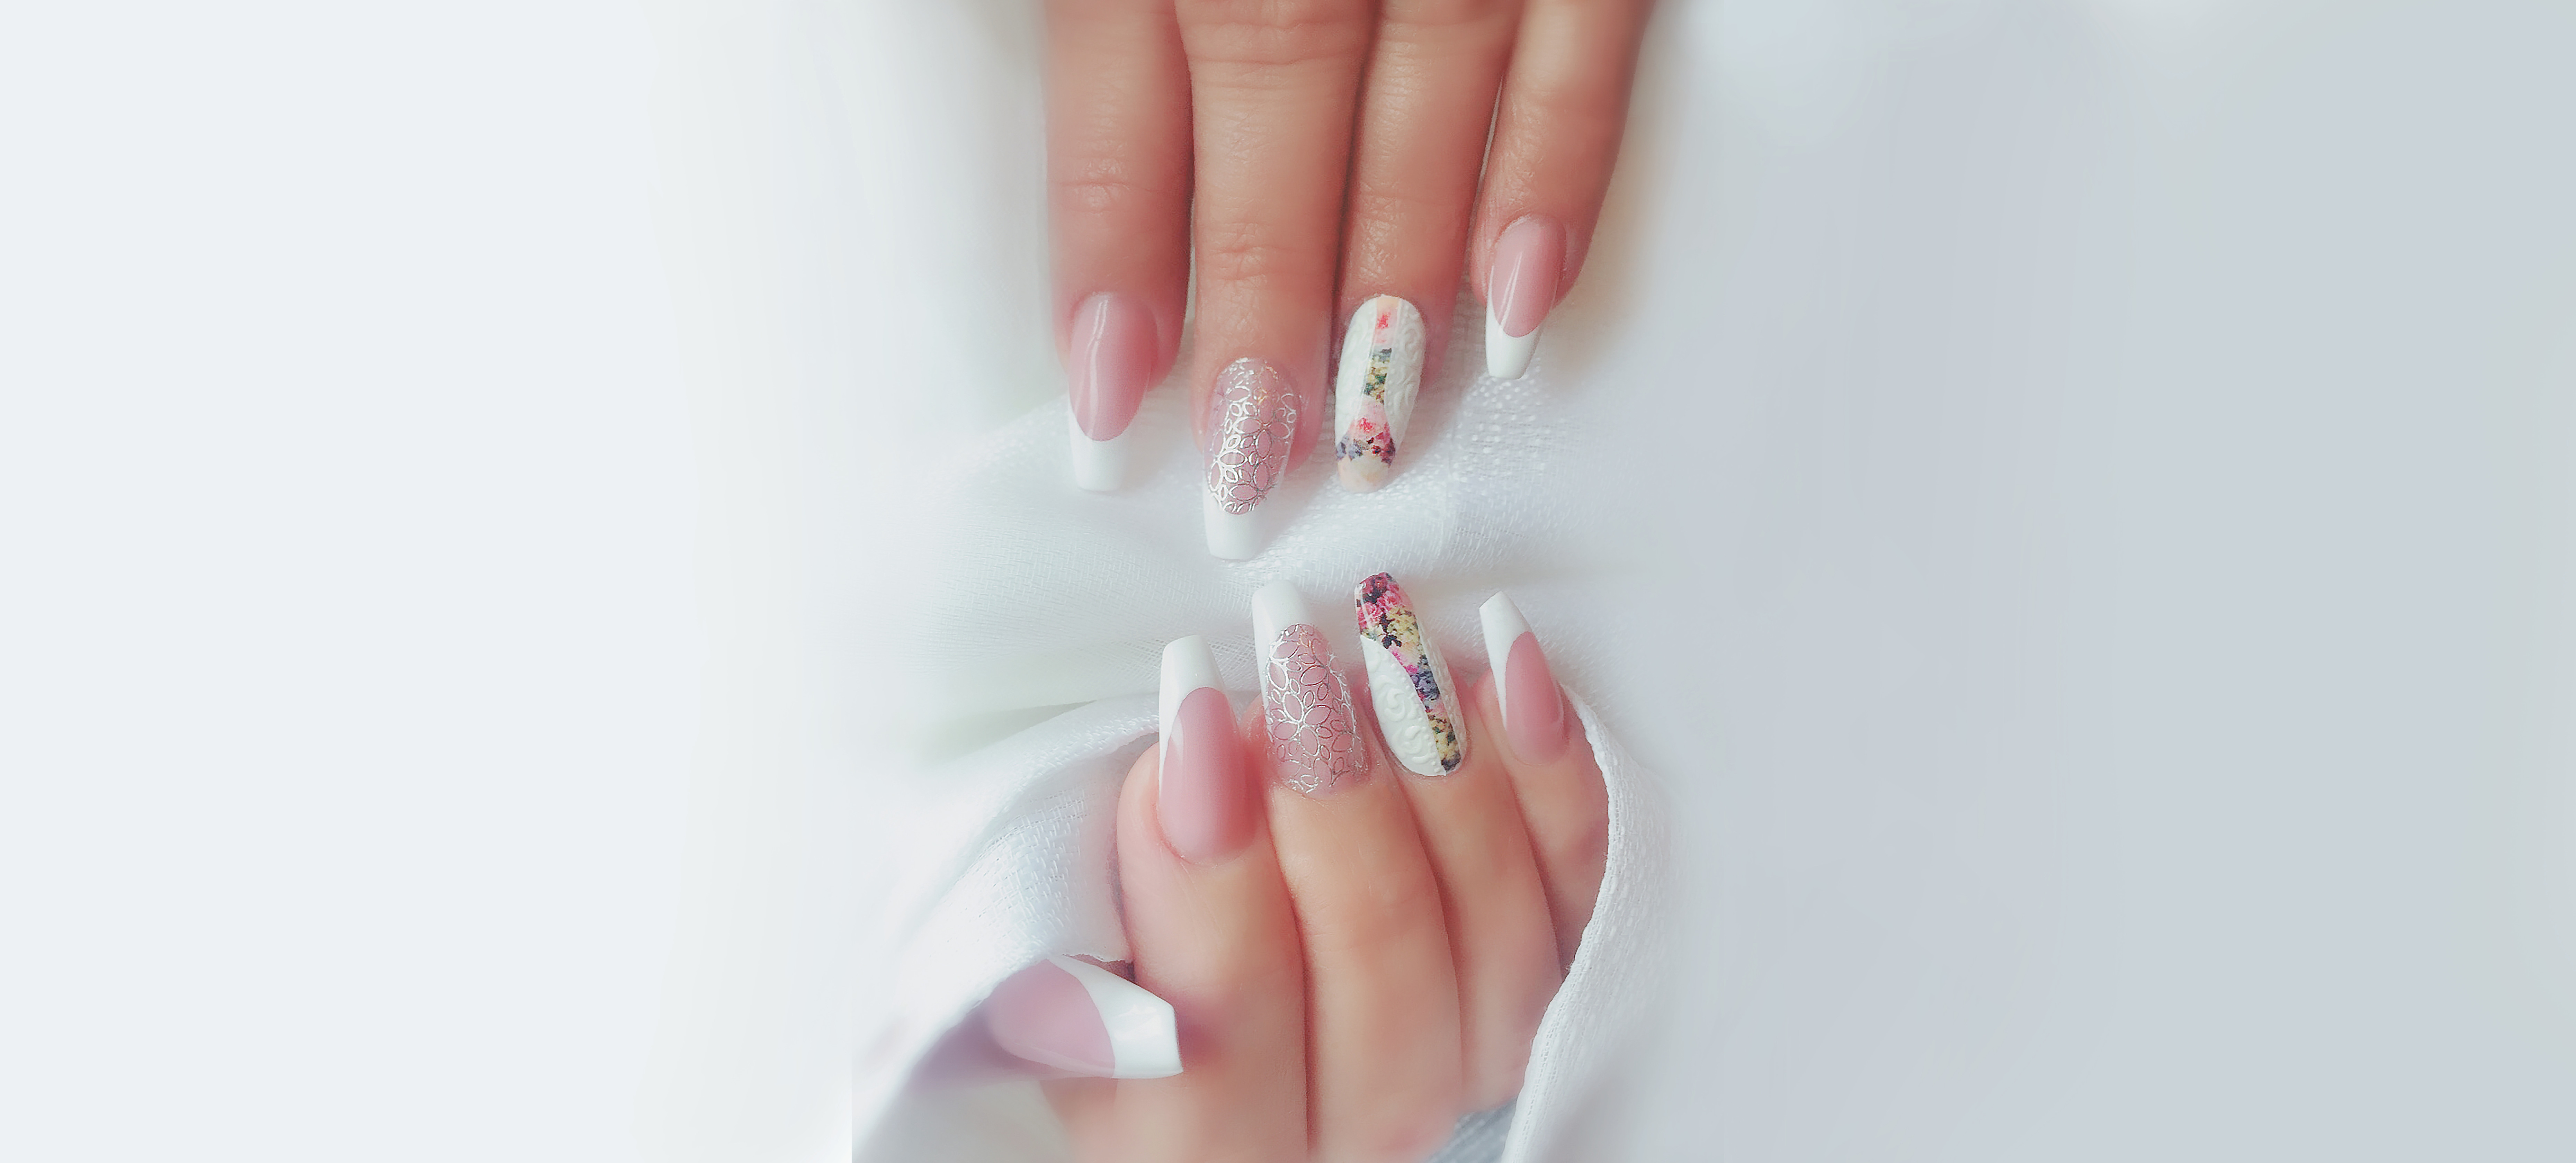 Copy of COMPLETE NAIL TECHNICIAN COURSE